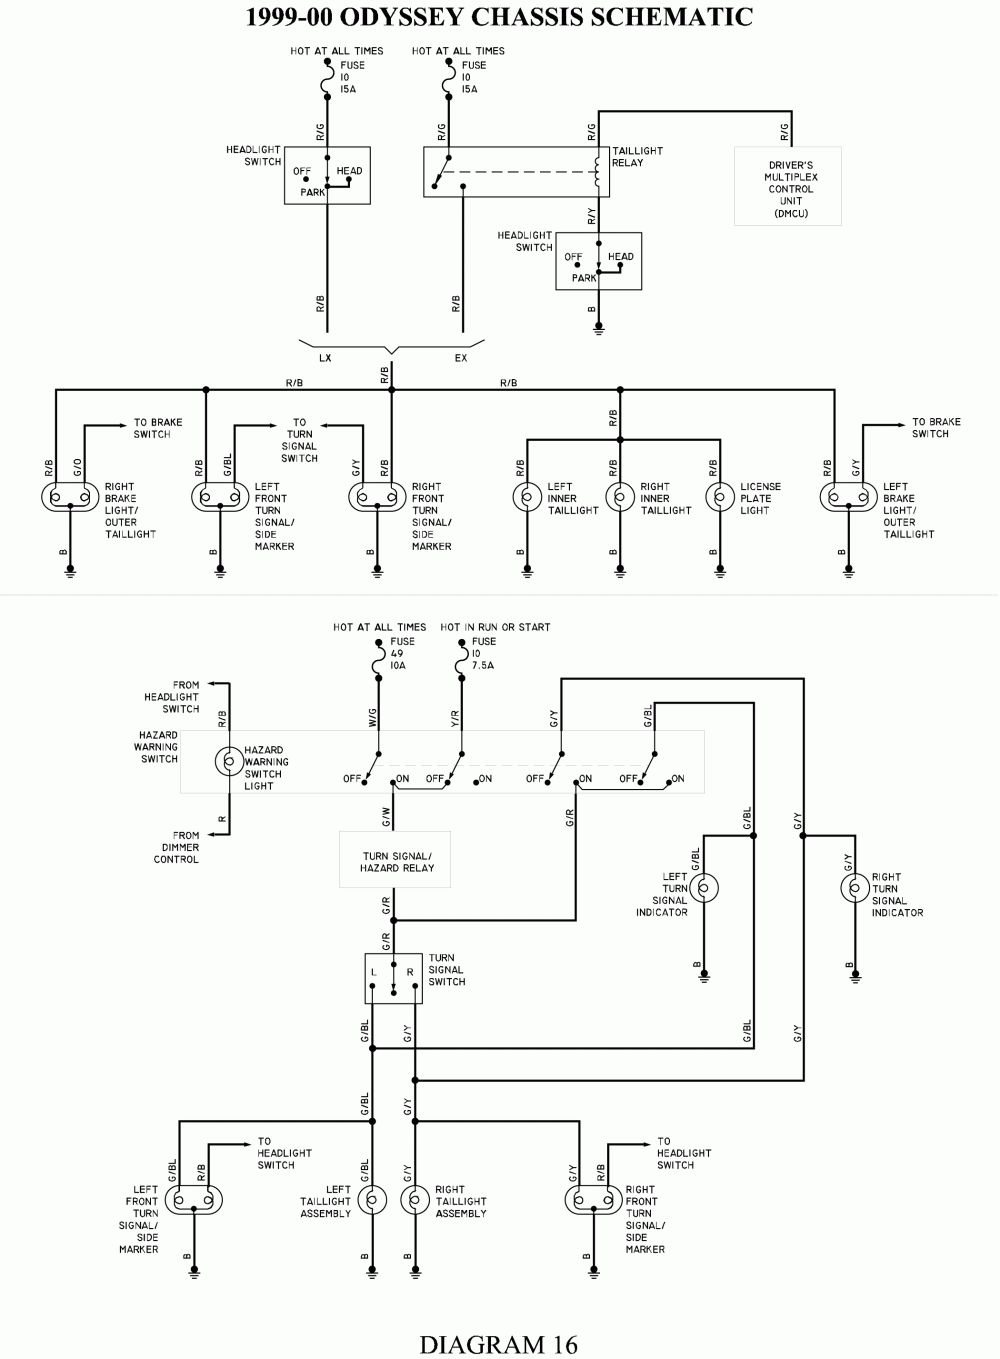 2006 Honda Accord Turn Signal Wiring Diagram | WiringDiagram.org Circuit  Diagram, Honda Accord